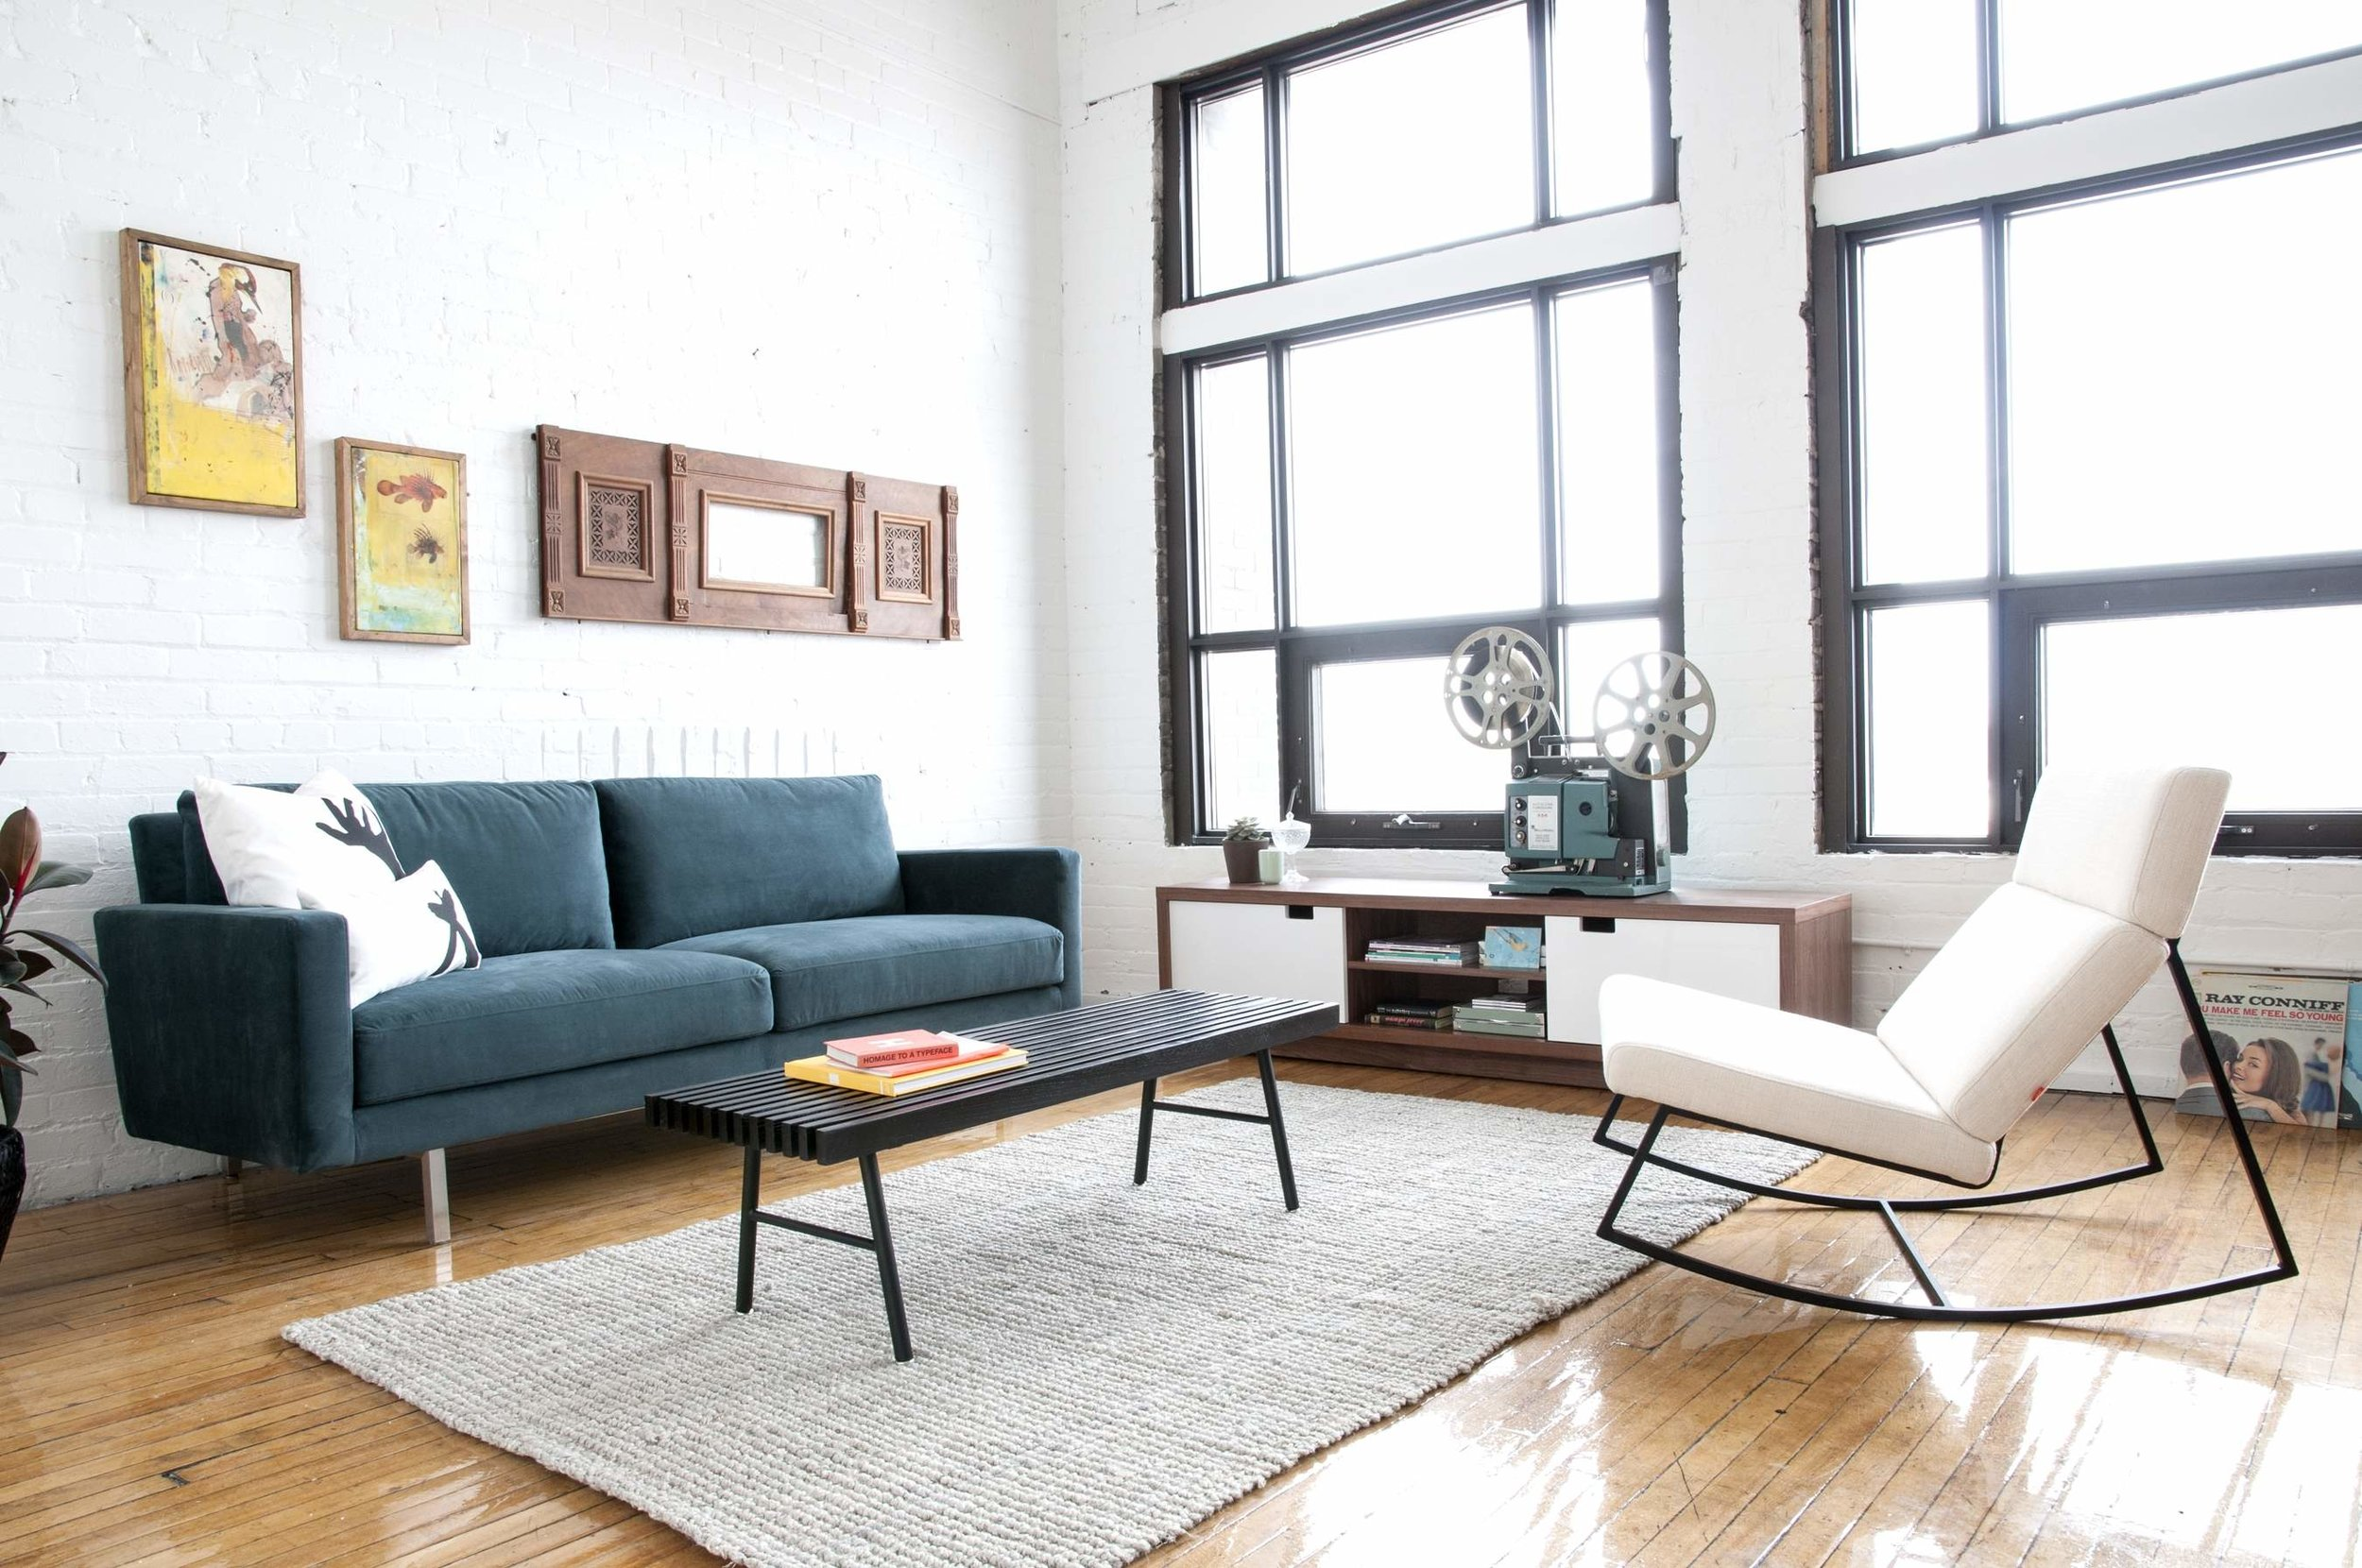 HIP - Gorgeous, high end, customizable mid-century modern furnishings located in beautiful NW Portland